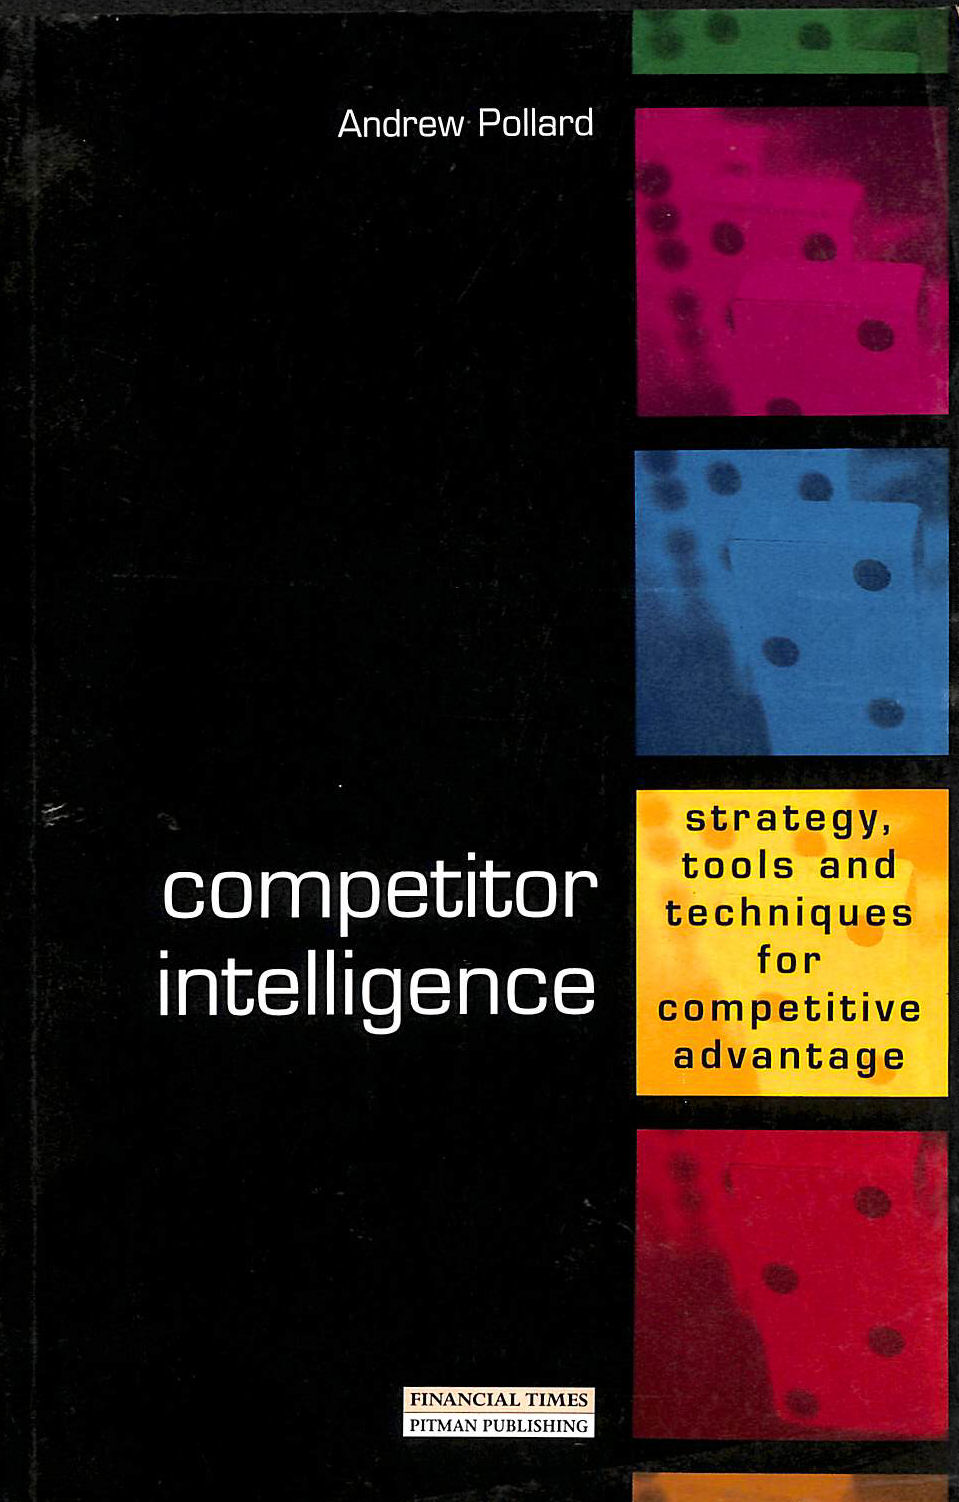 Image for Competitor Intelligence Strategy, Tools and techniques for competitive advantage: The Strategies, Tactics and Tools for Gathering Business Intelligence (Financial times management)